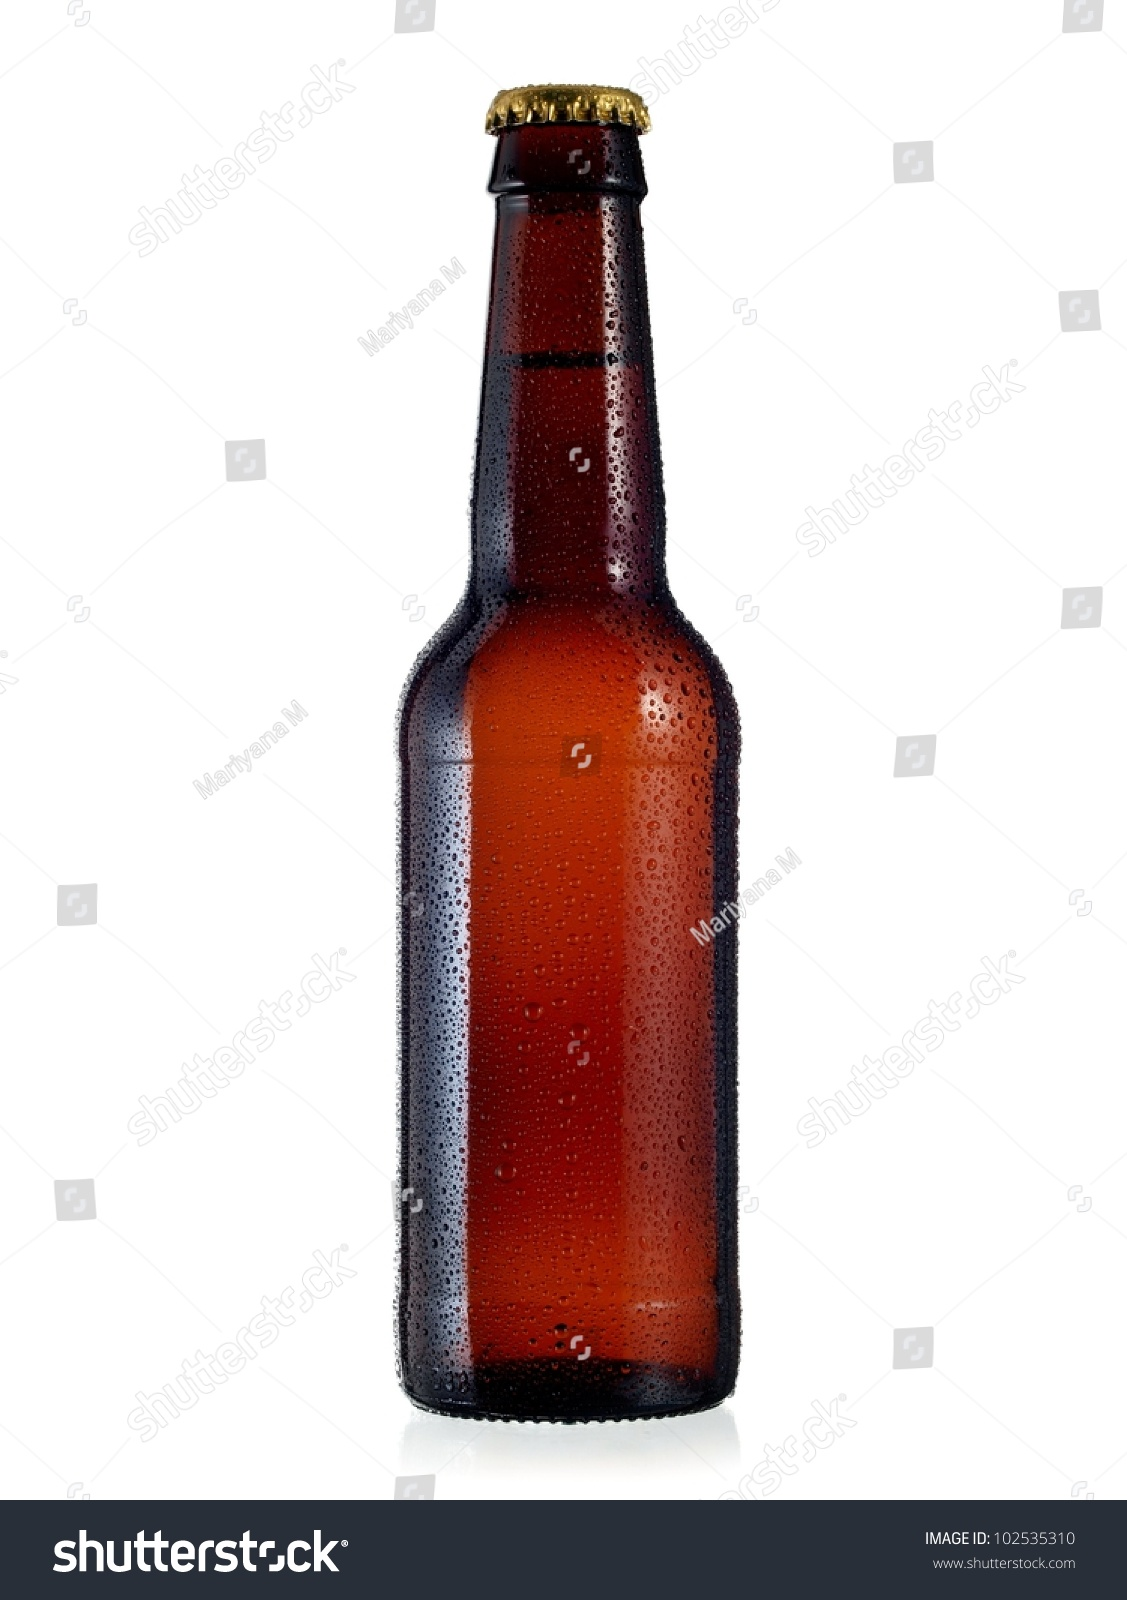 Beer bottle with drops #102535310